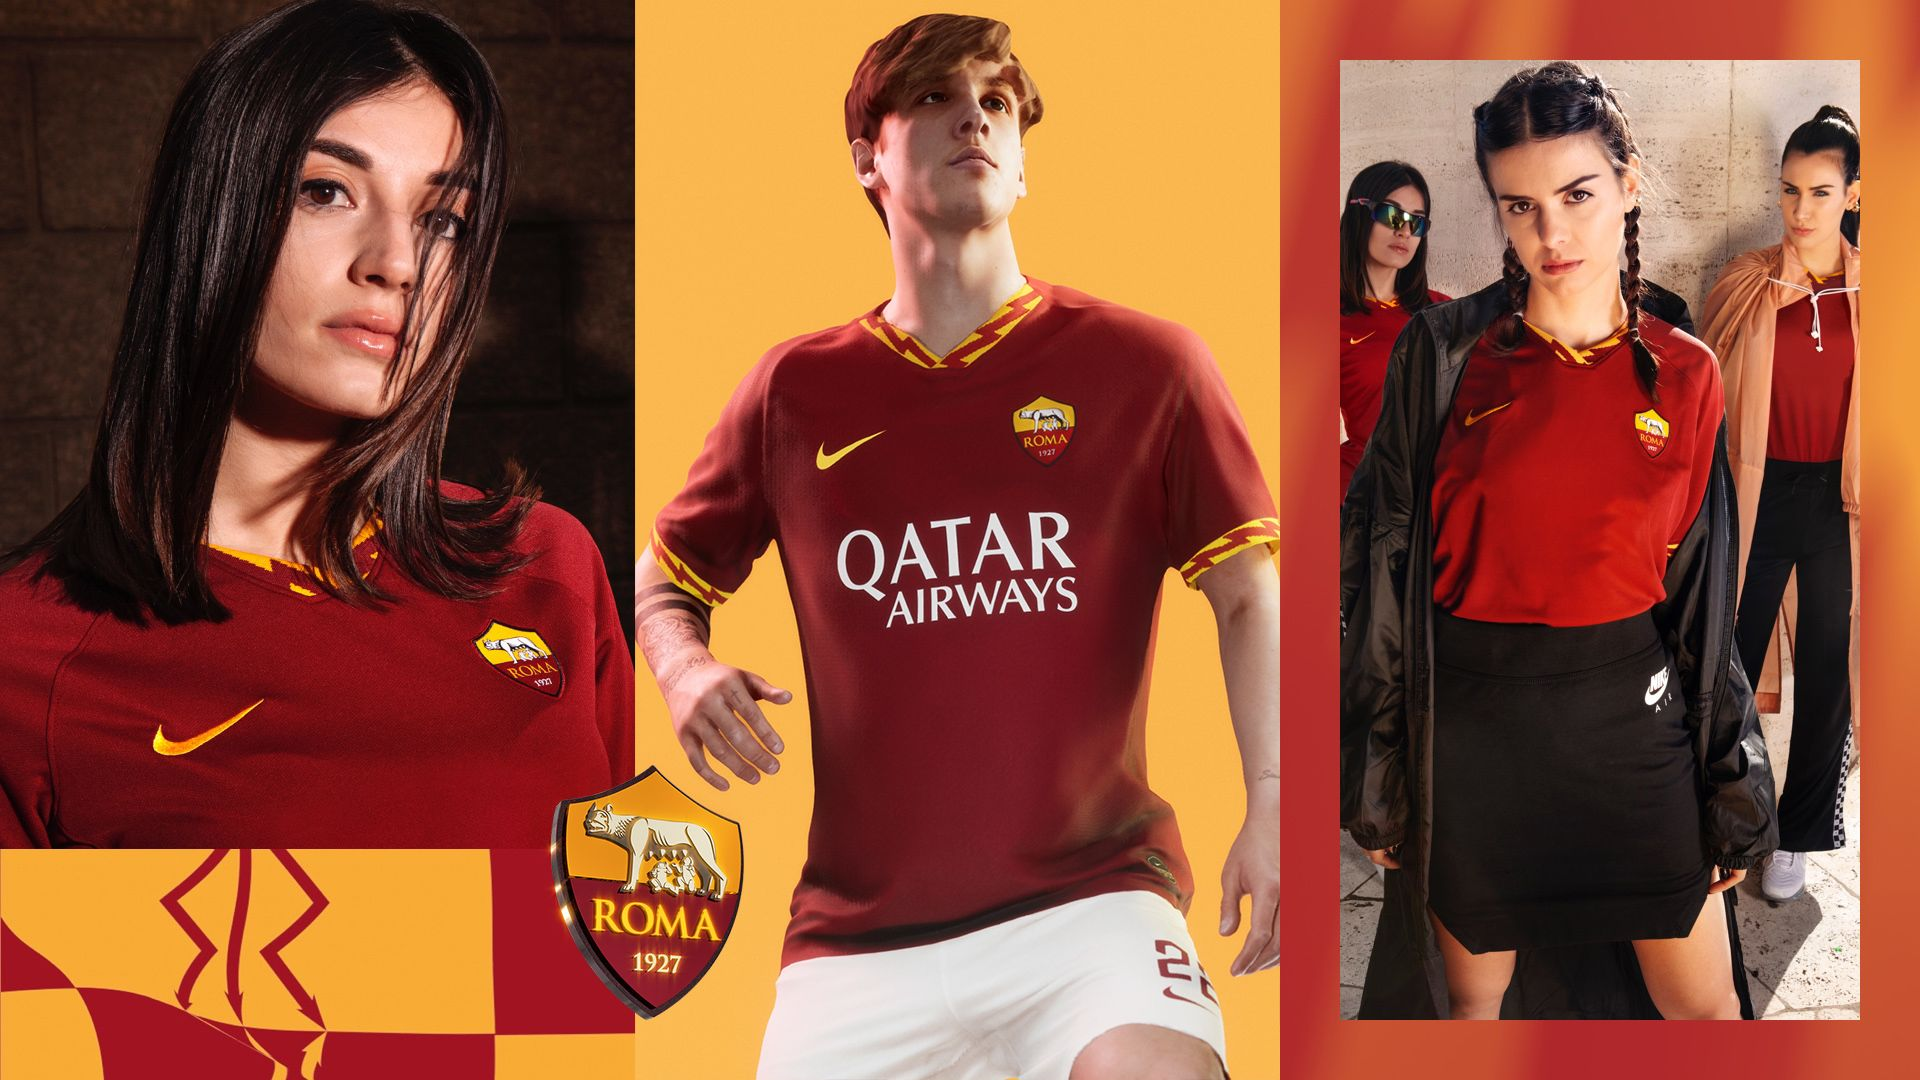 Asroma Calendario.Maglia Home Stadium 2019 20 A S Roma Nike Com It